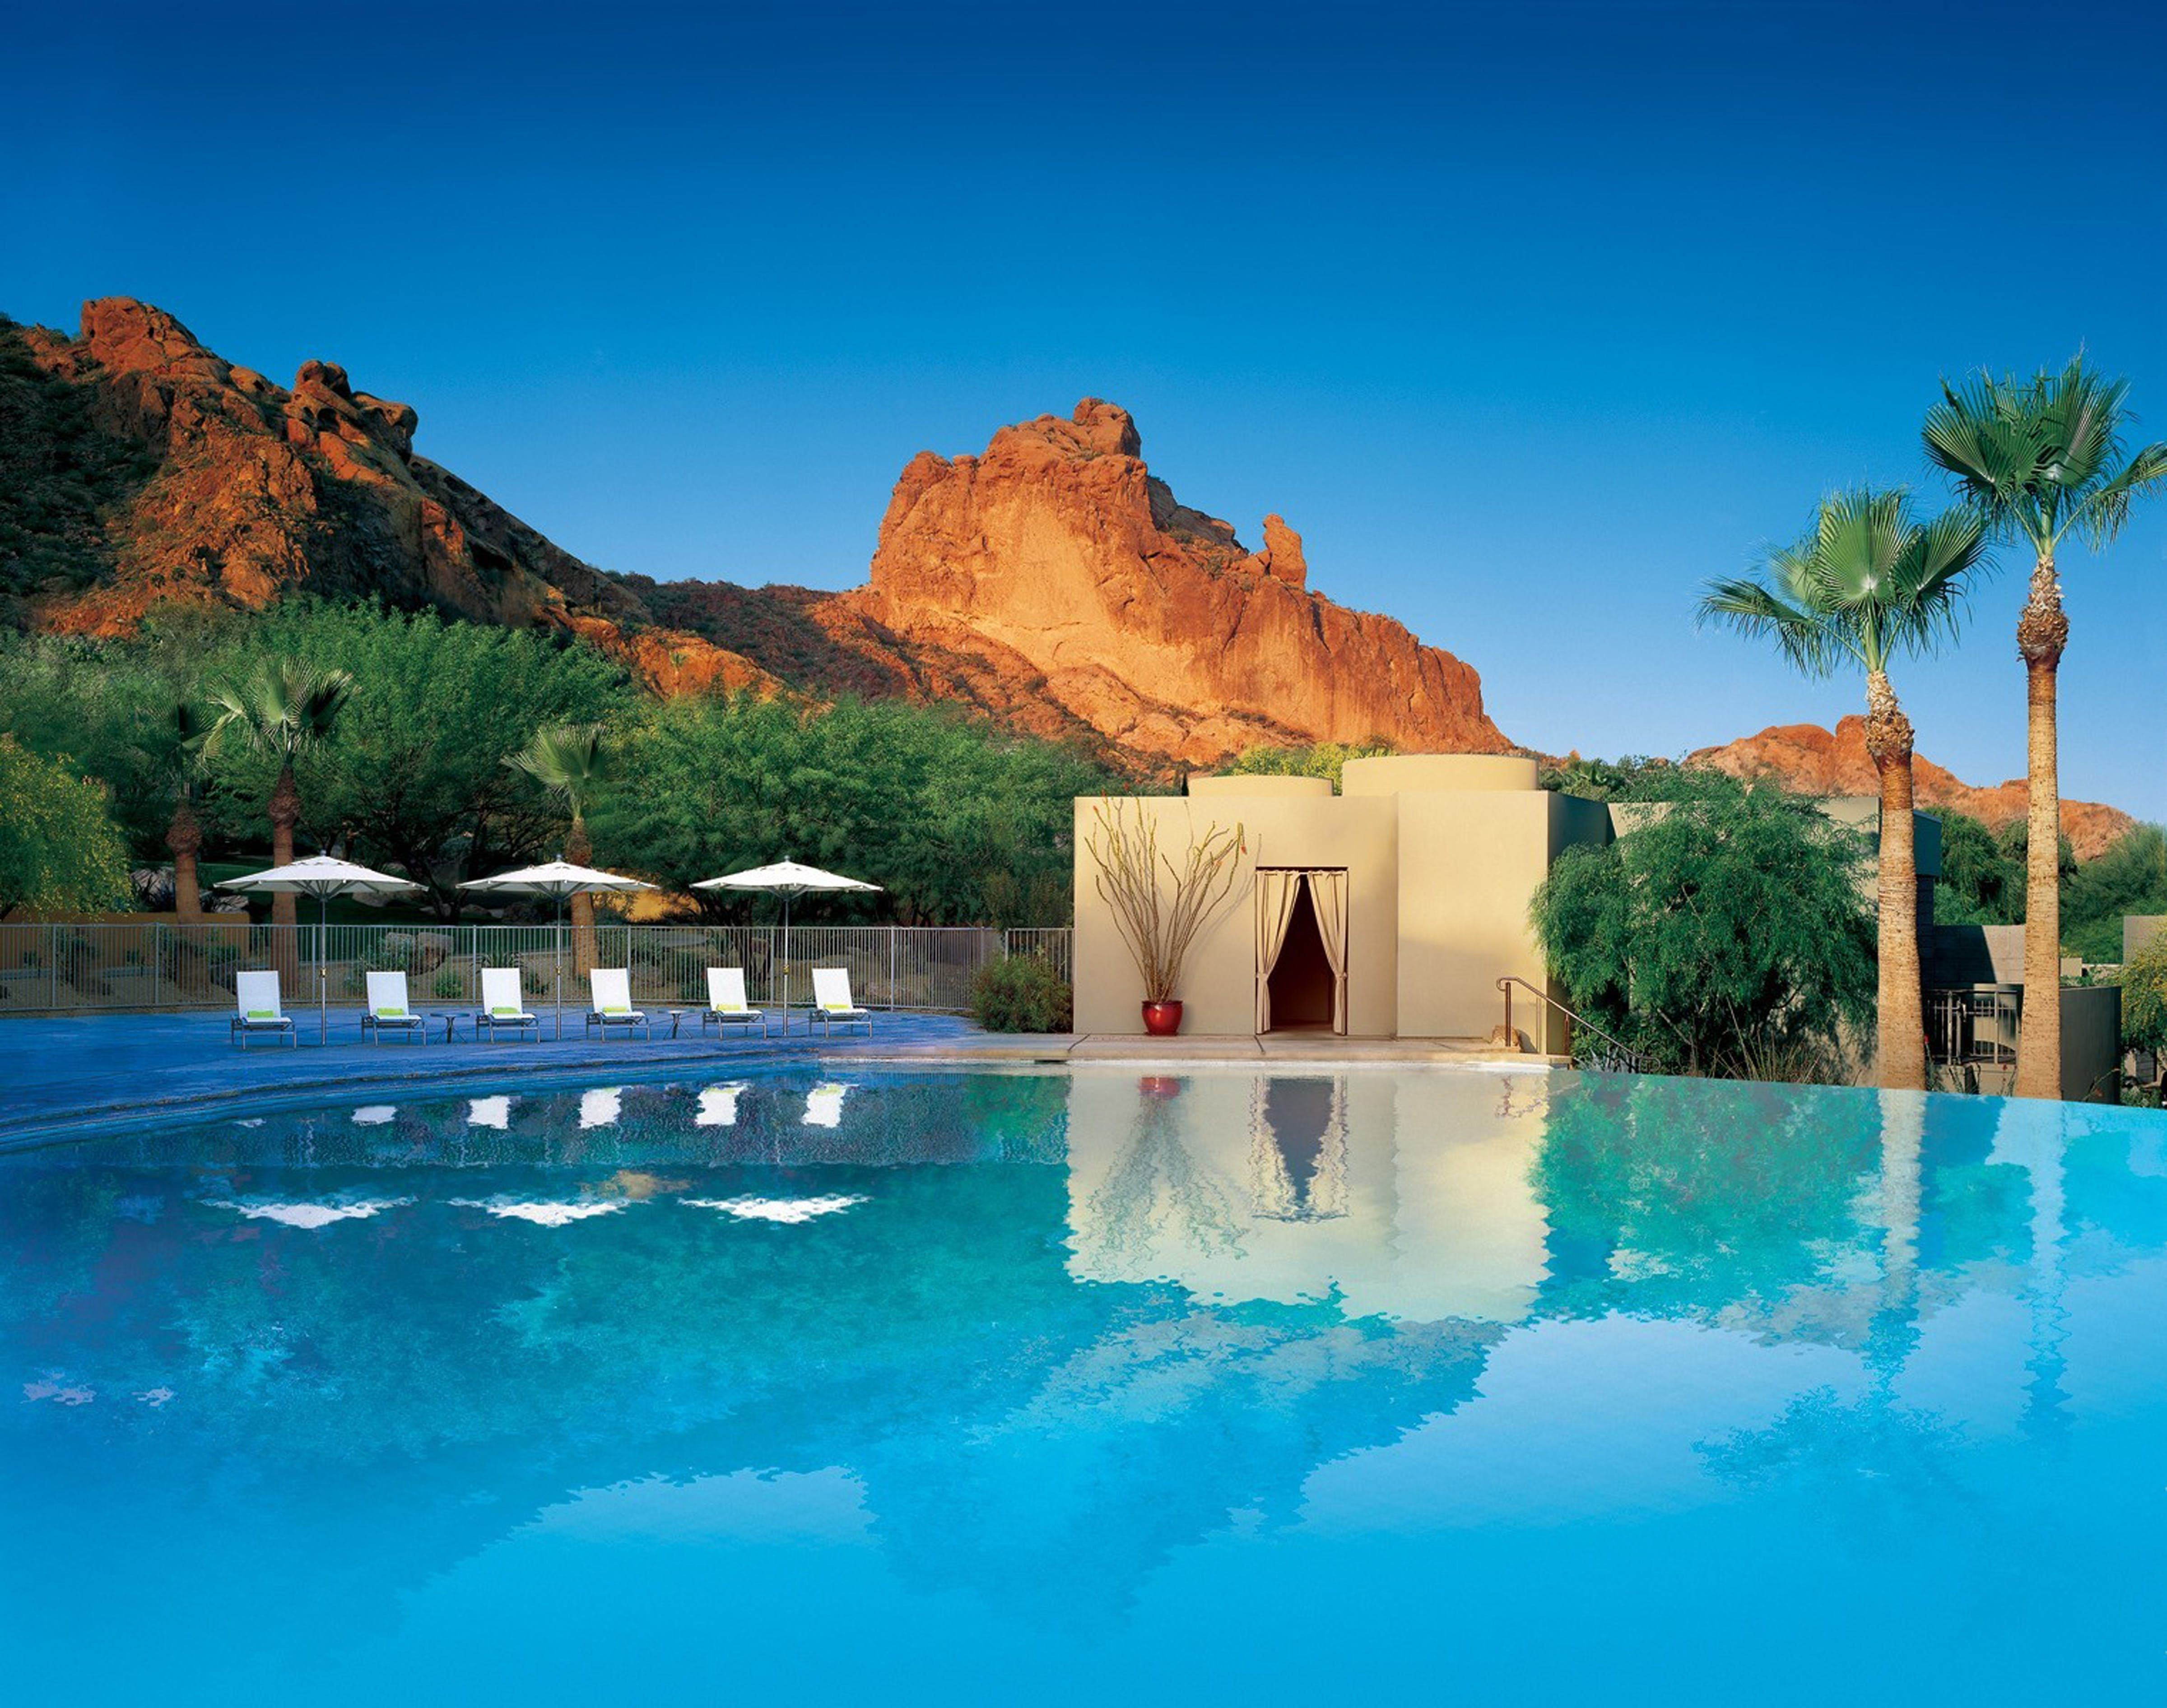 10 Couples Resorts For A Romantic Weekend Getaway In Arizona Couples Resorts Arizona Travel Romantic Resorts